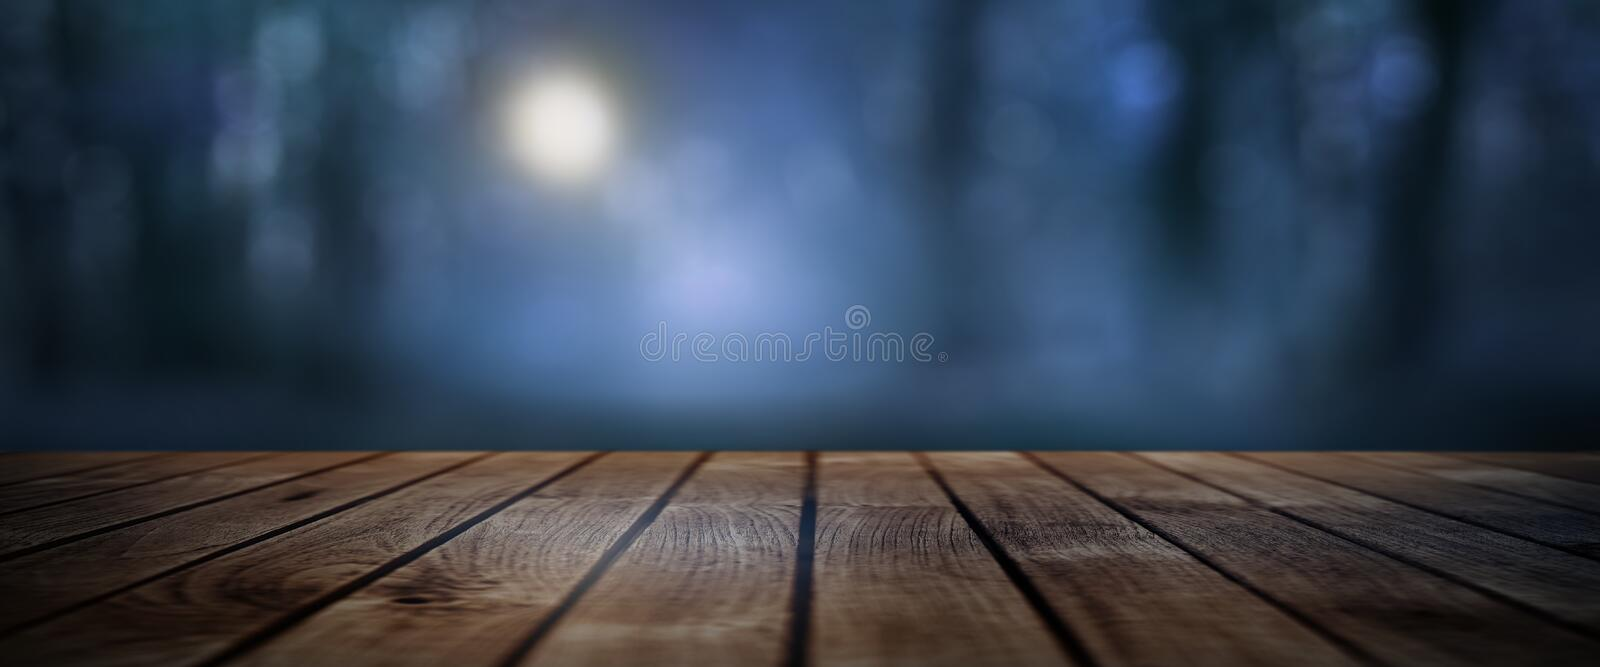 Dark mystical forest with rustic wooden floor stock photography